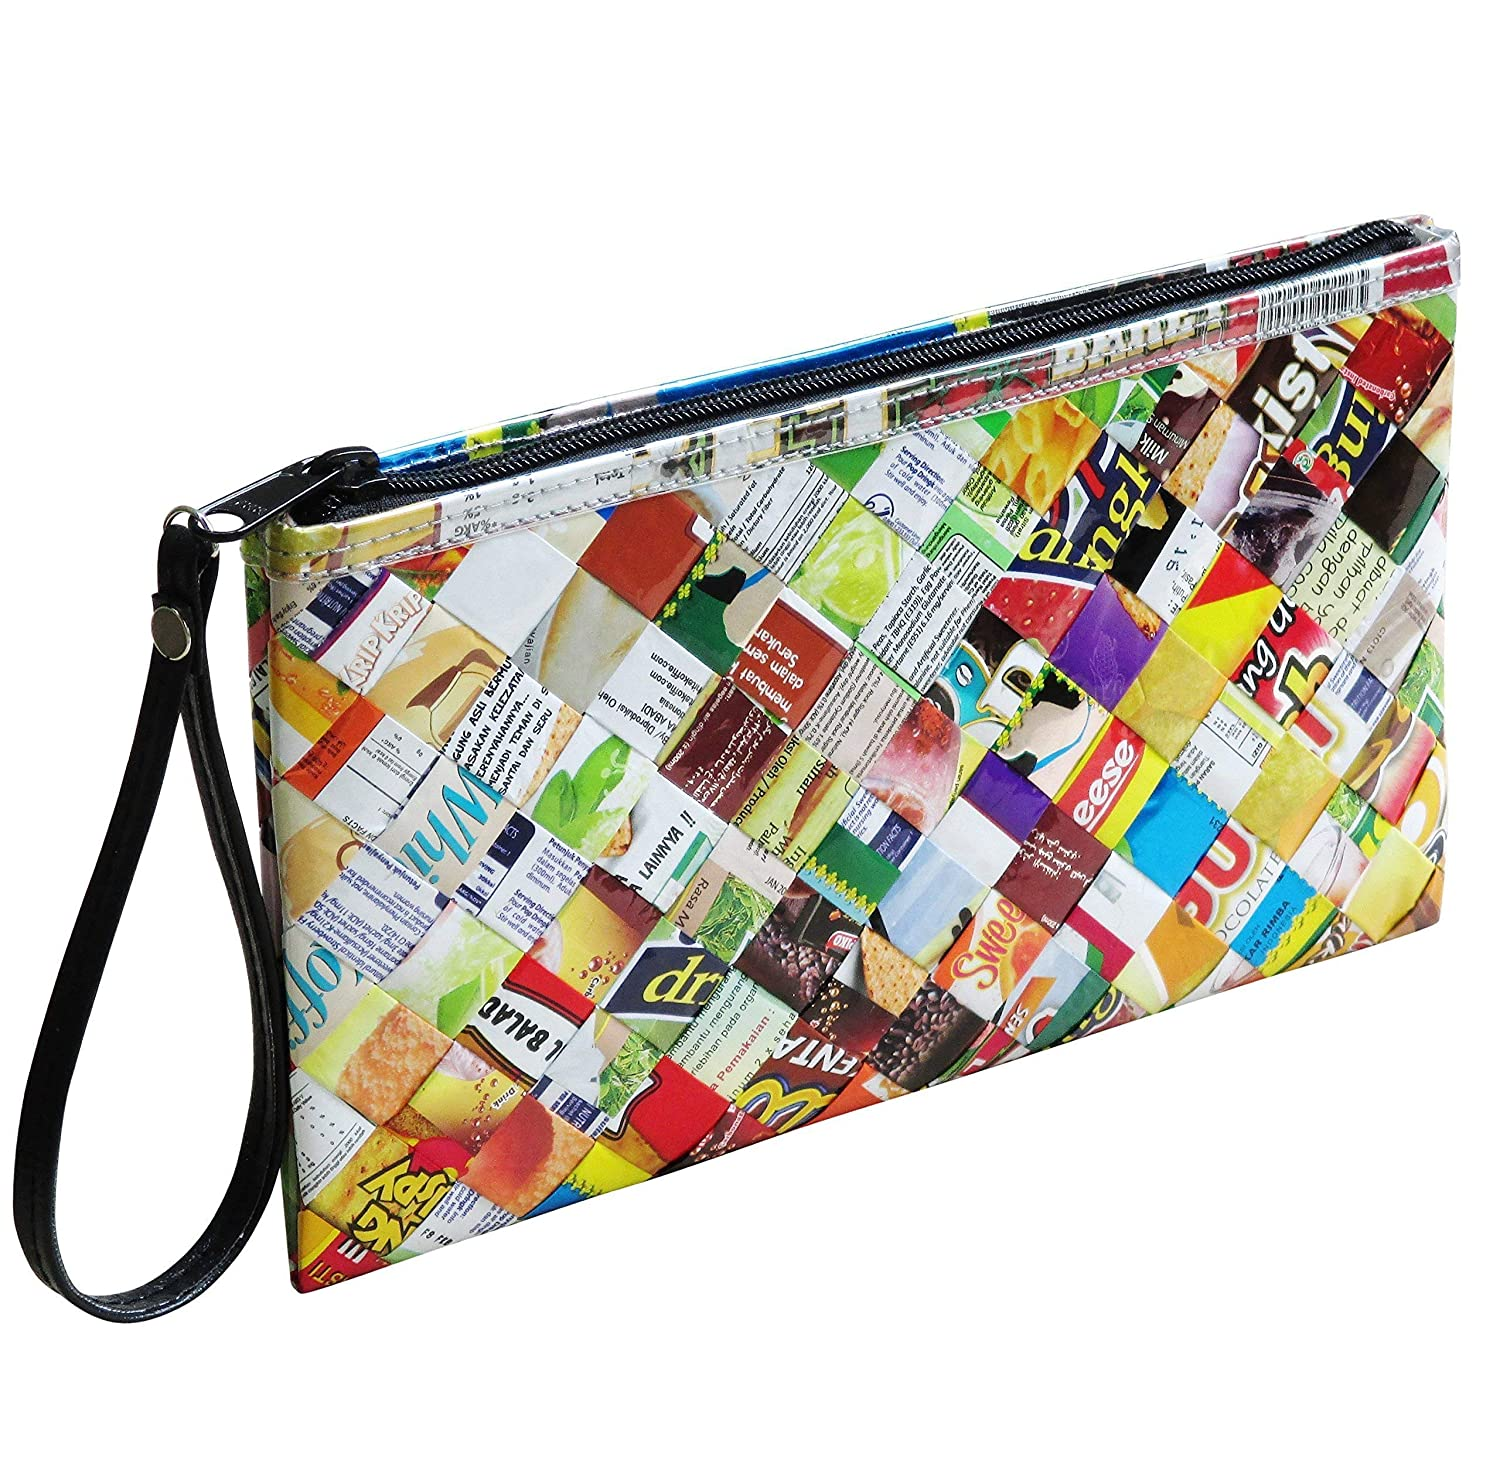 Large wristlet made from candy wrappers PRIME Gift for lover of candies sweet girlfriend wife daughter upcycled recycled gum wrapper hippie clutch bag purse woven type style fun cute cool present